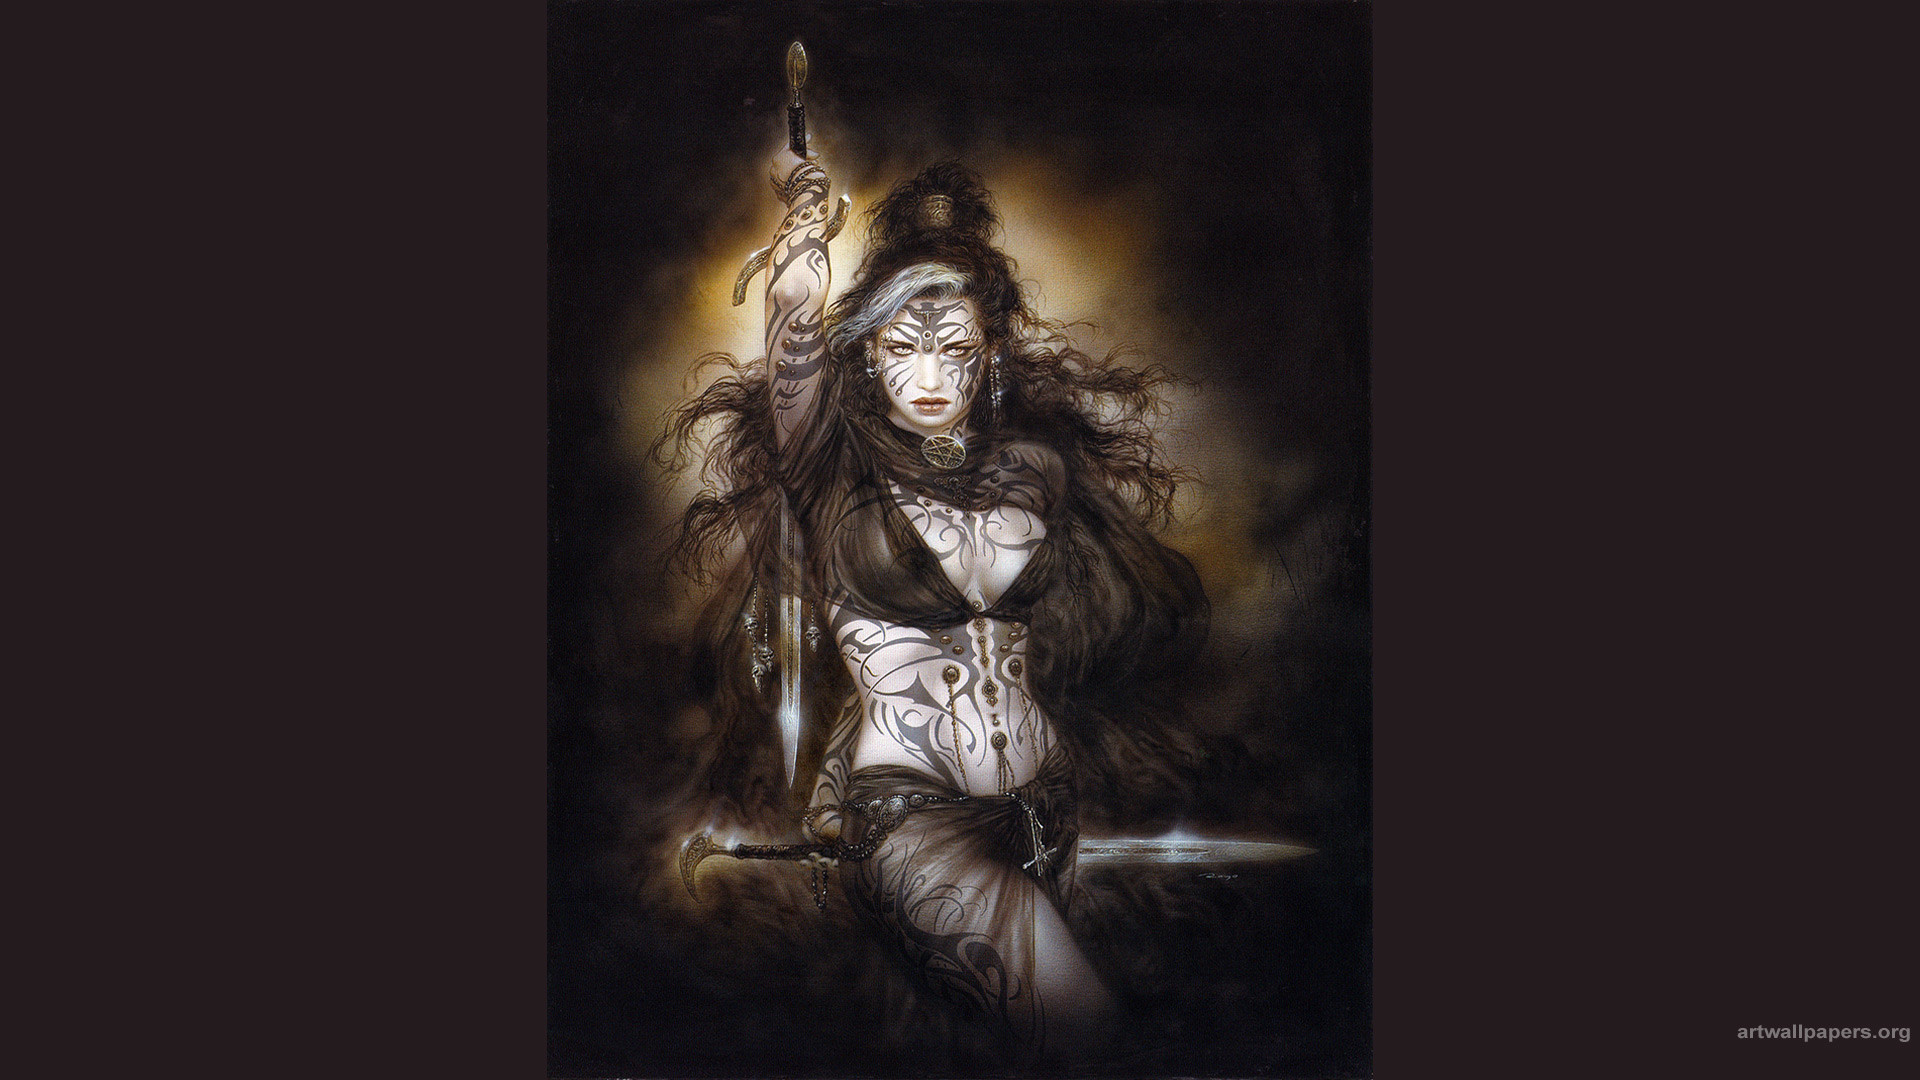 Res: 1920x1080, Full HD Widescreen 1080p - 1920 x 1080 : 1920 x 1200. Luis Royo Wallpapers